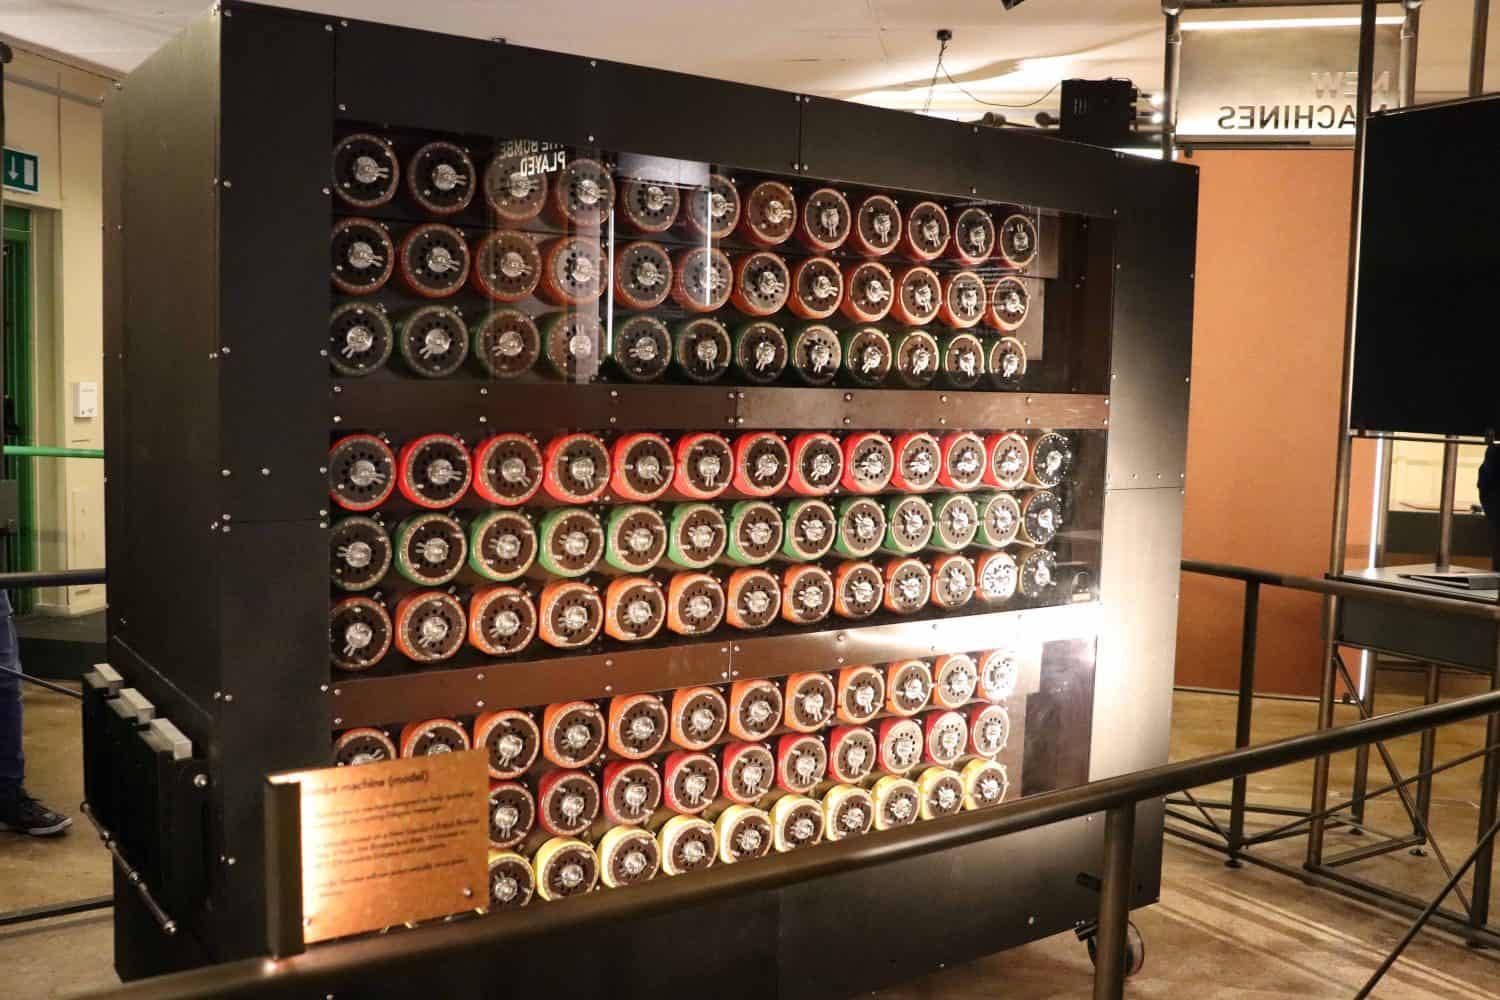 Bombe machine at Bletchley Park